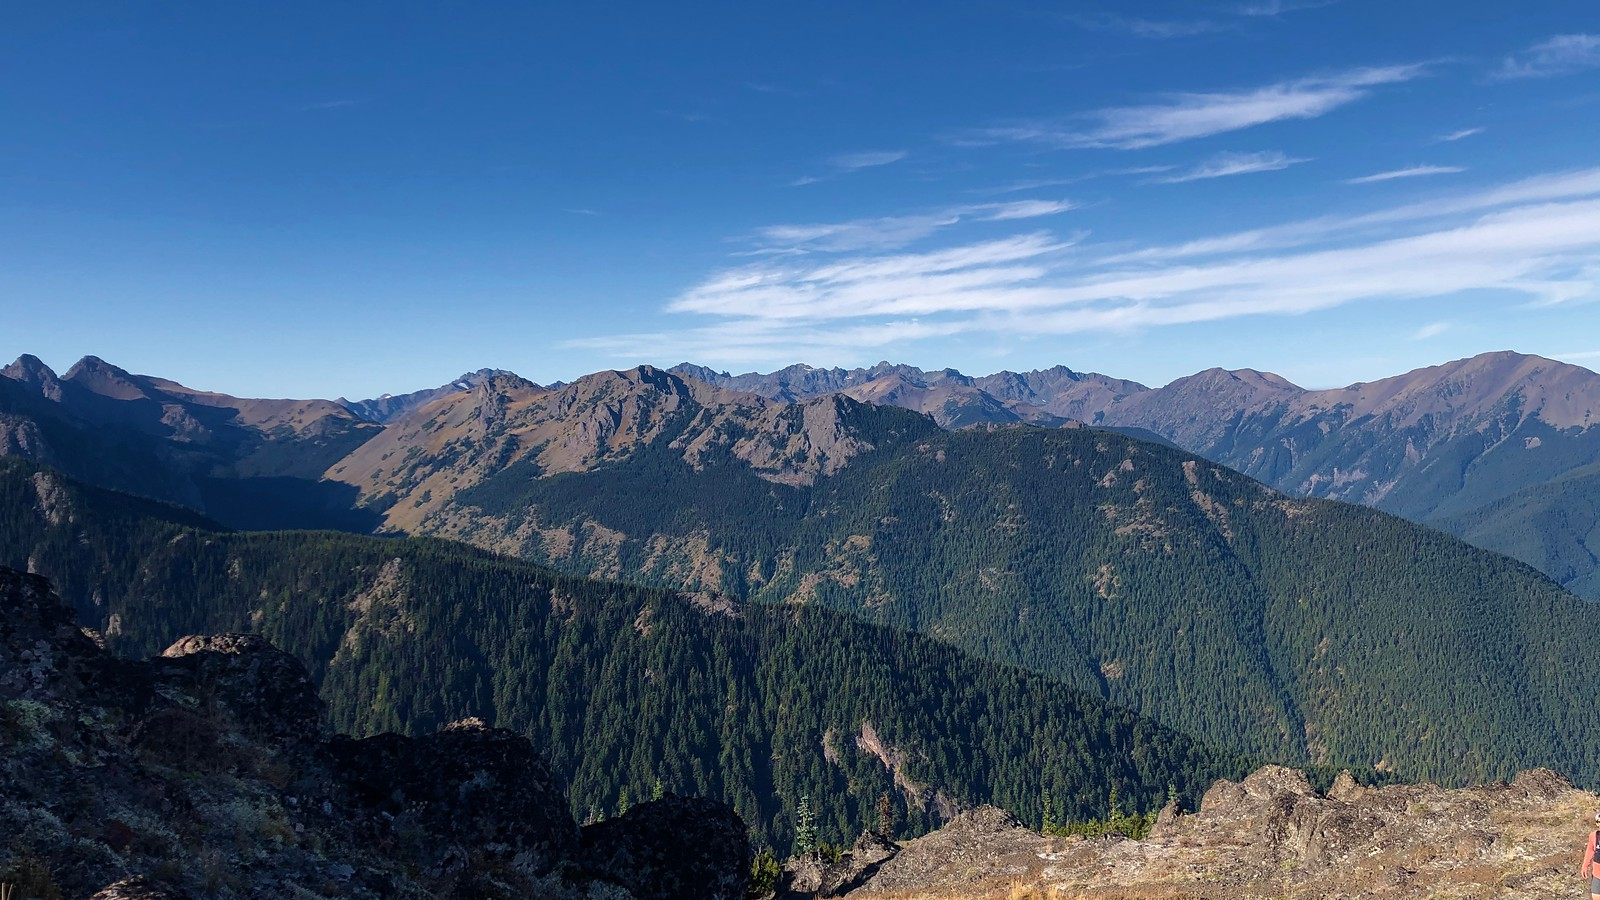 The mountains from the summit